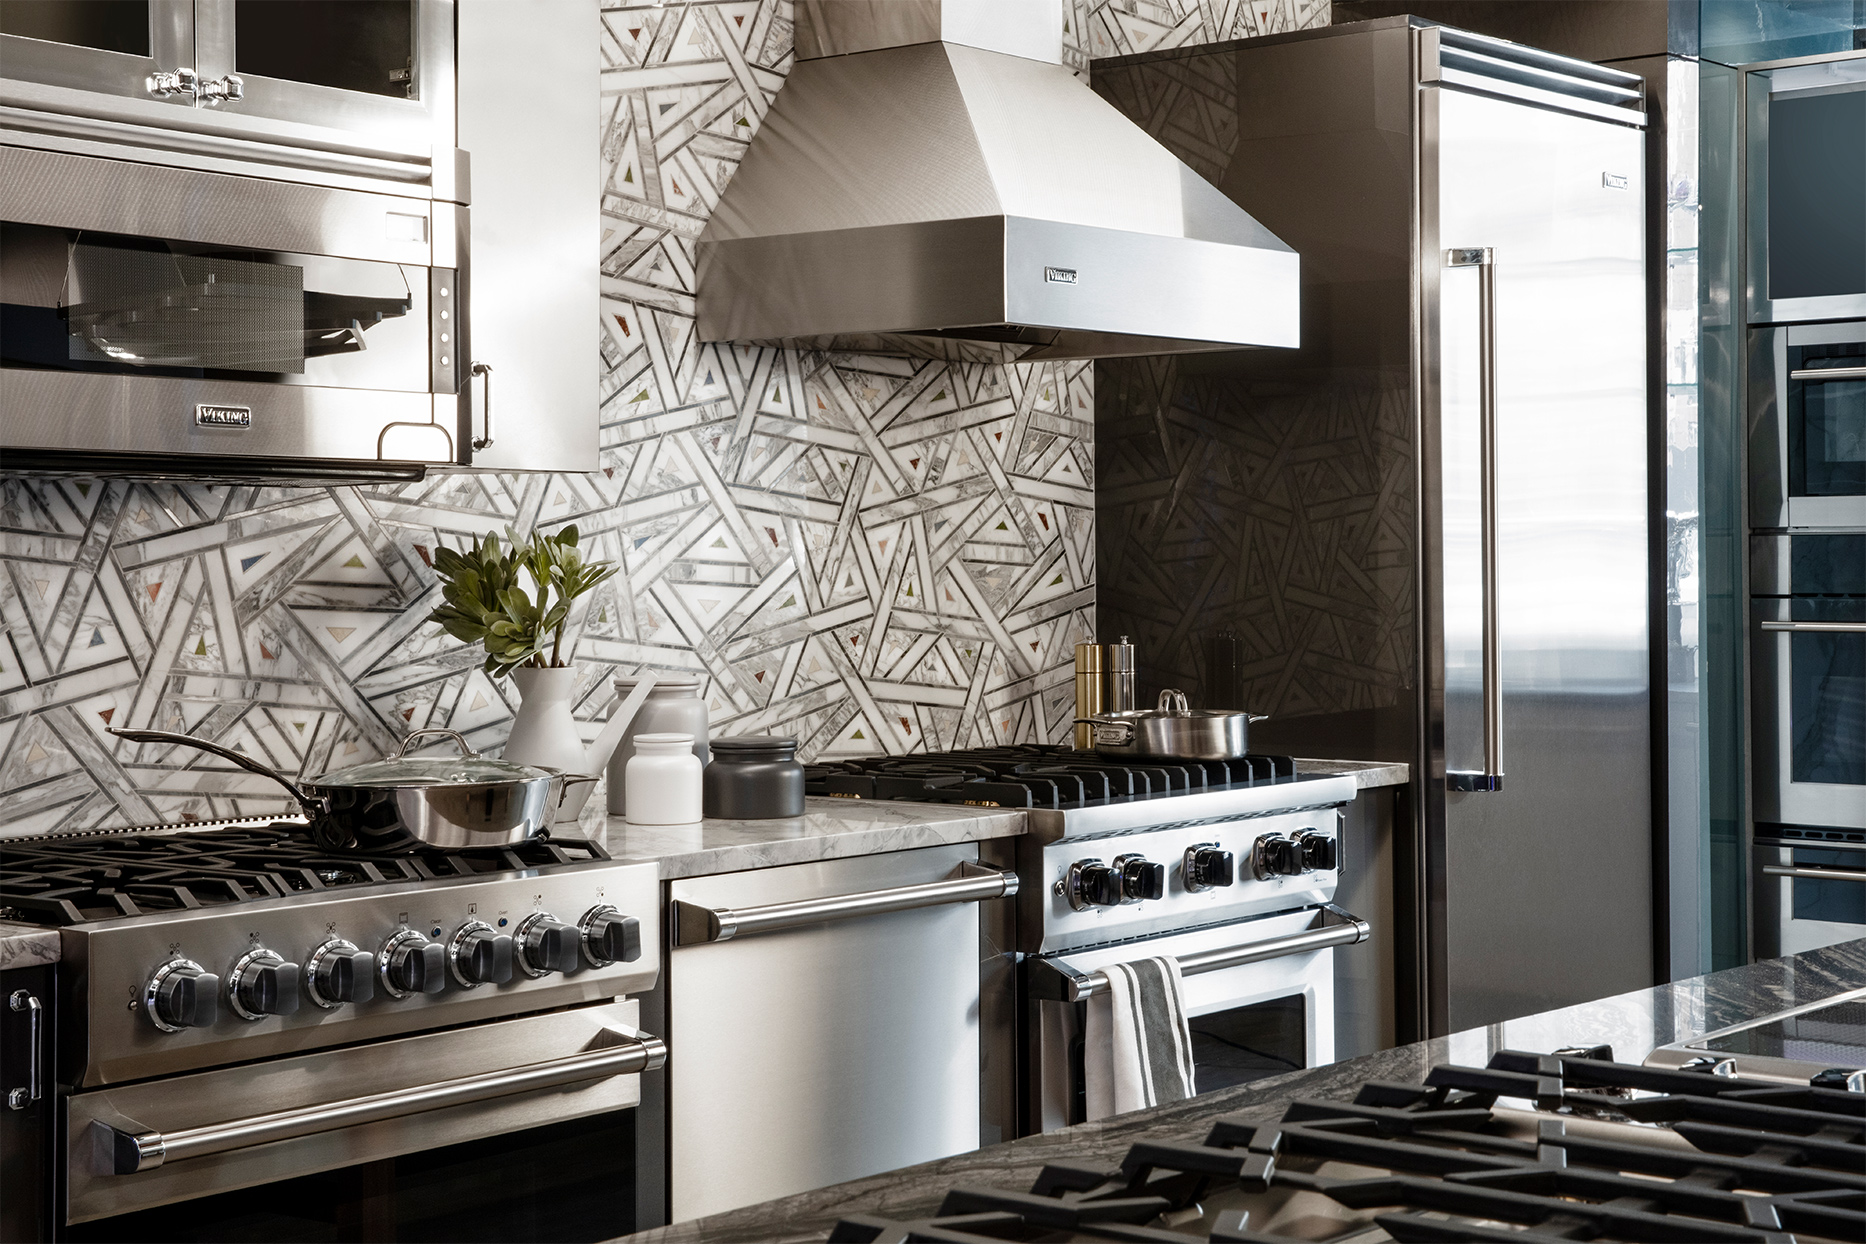 neutral triangular patterned backsplash